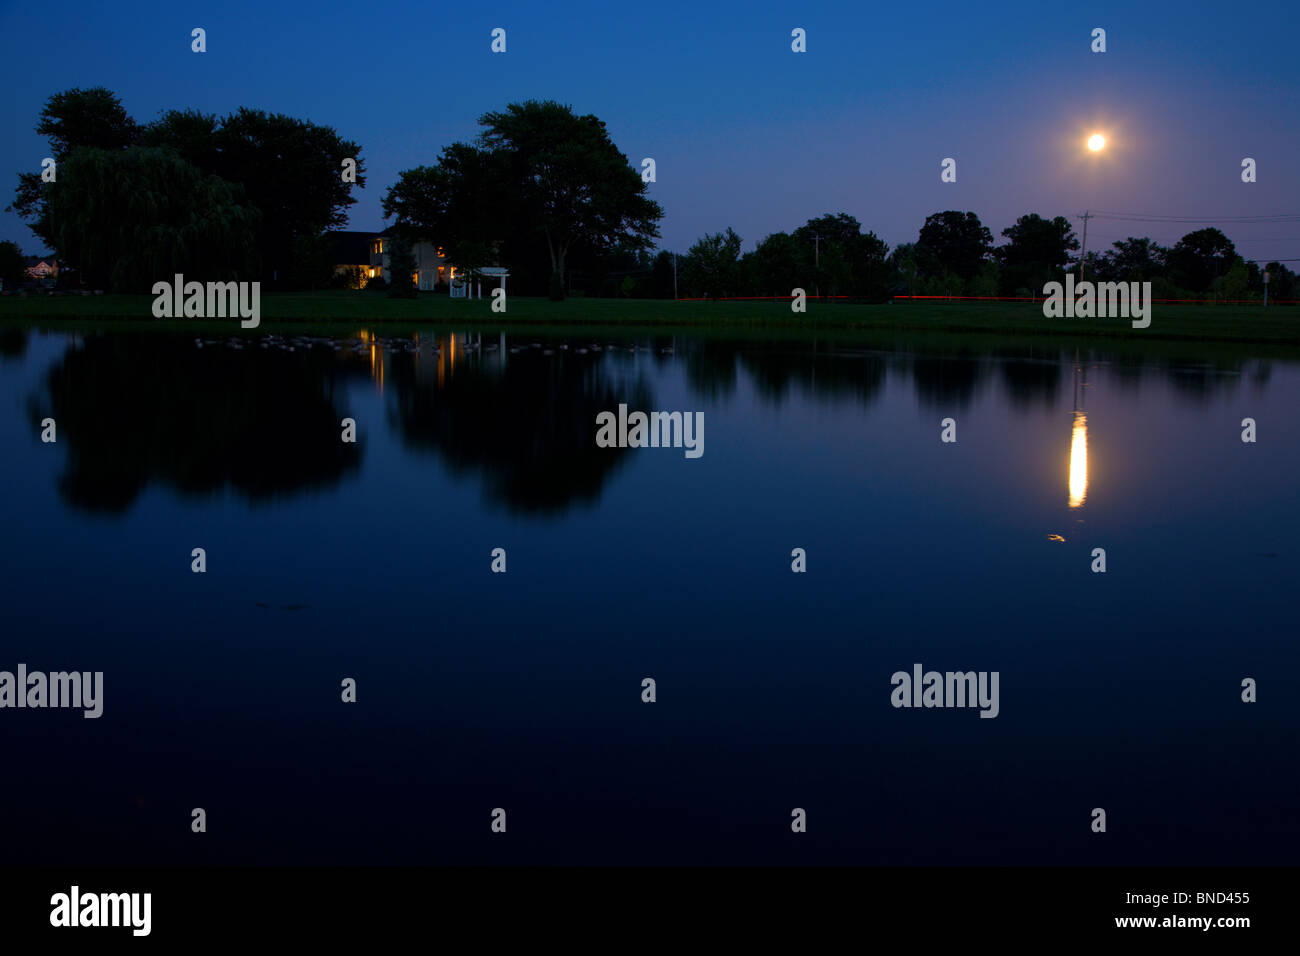 Rising moon over the lake - Stock Image